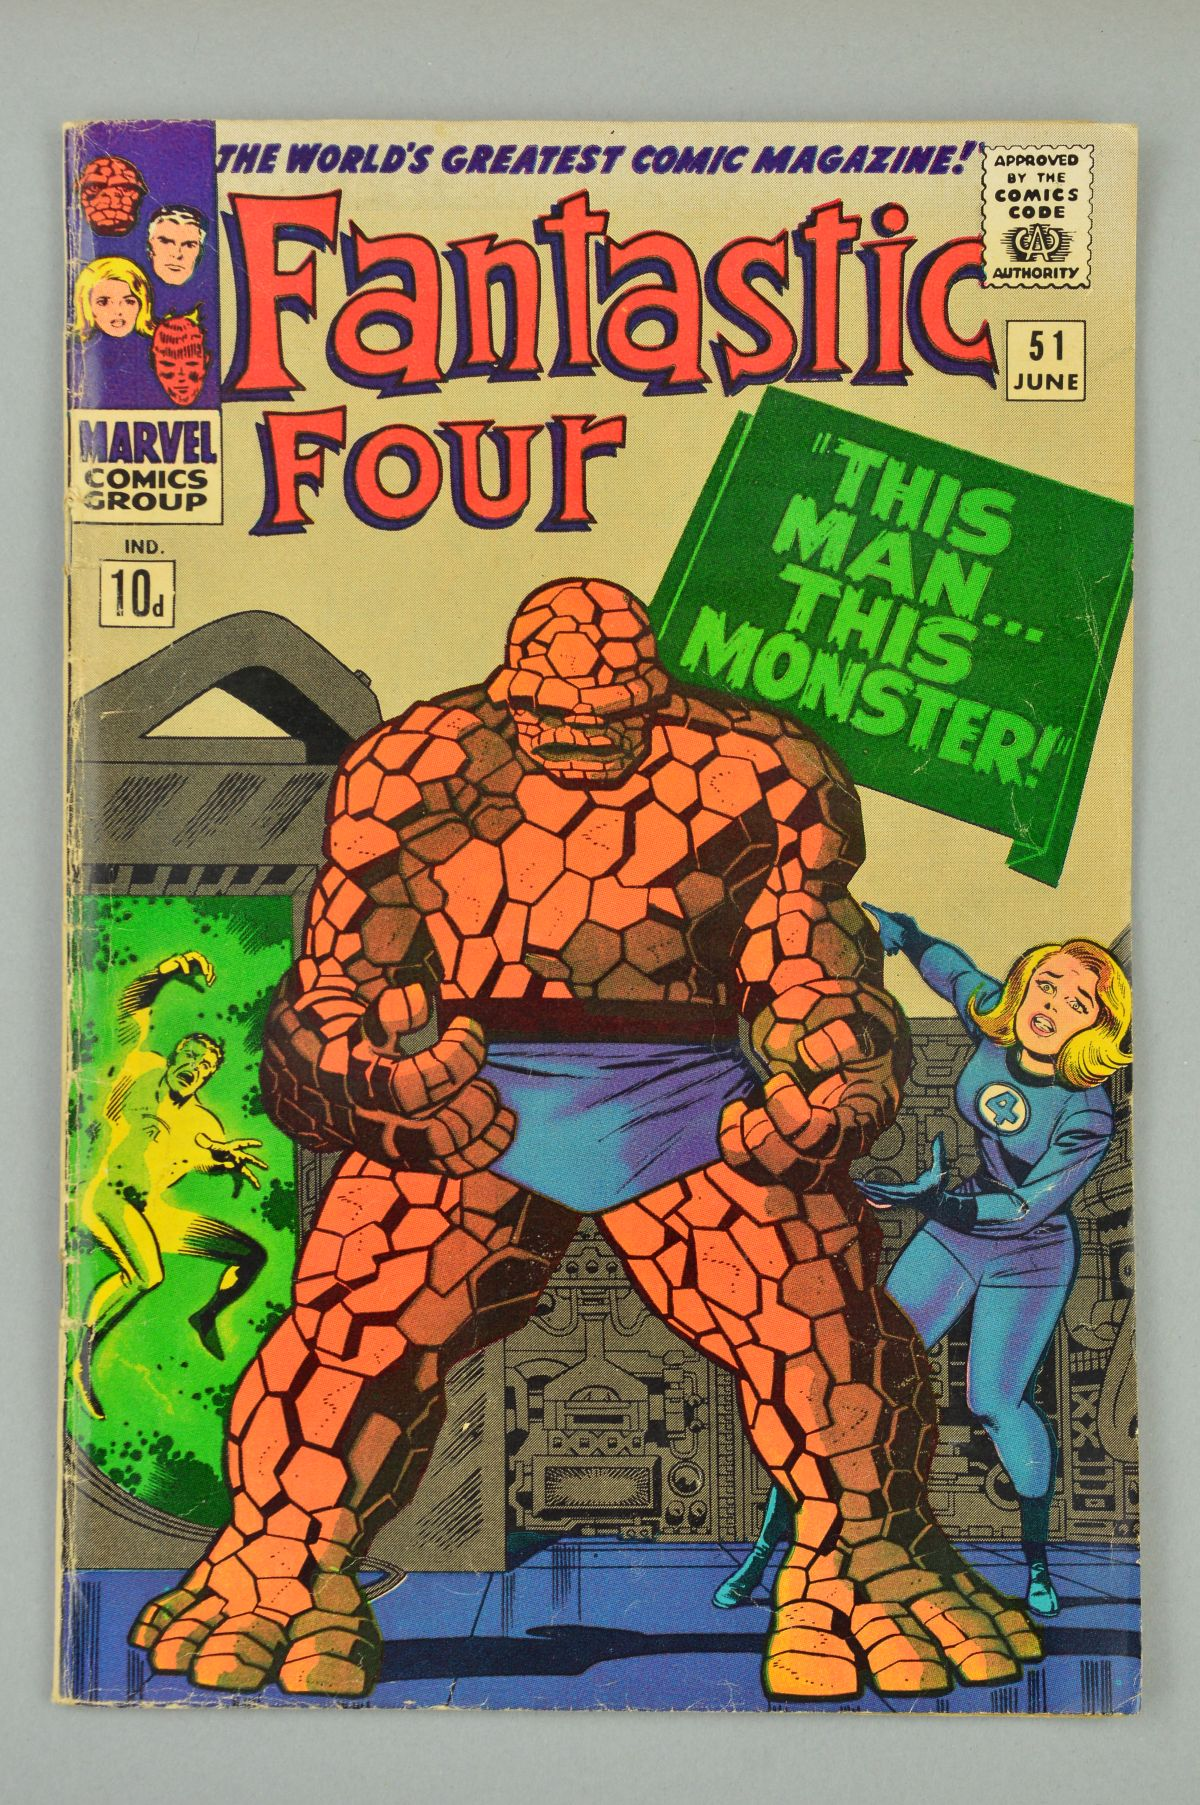 Lot 1846 - Fantastic Four (1961) #51, Published:June 10, 1966, Penciller:Jack Kirby, Cover Artist:Jack Kirby